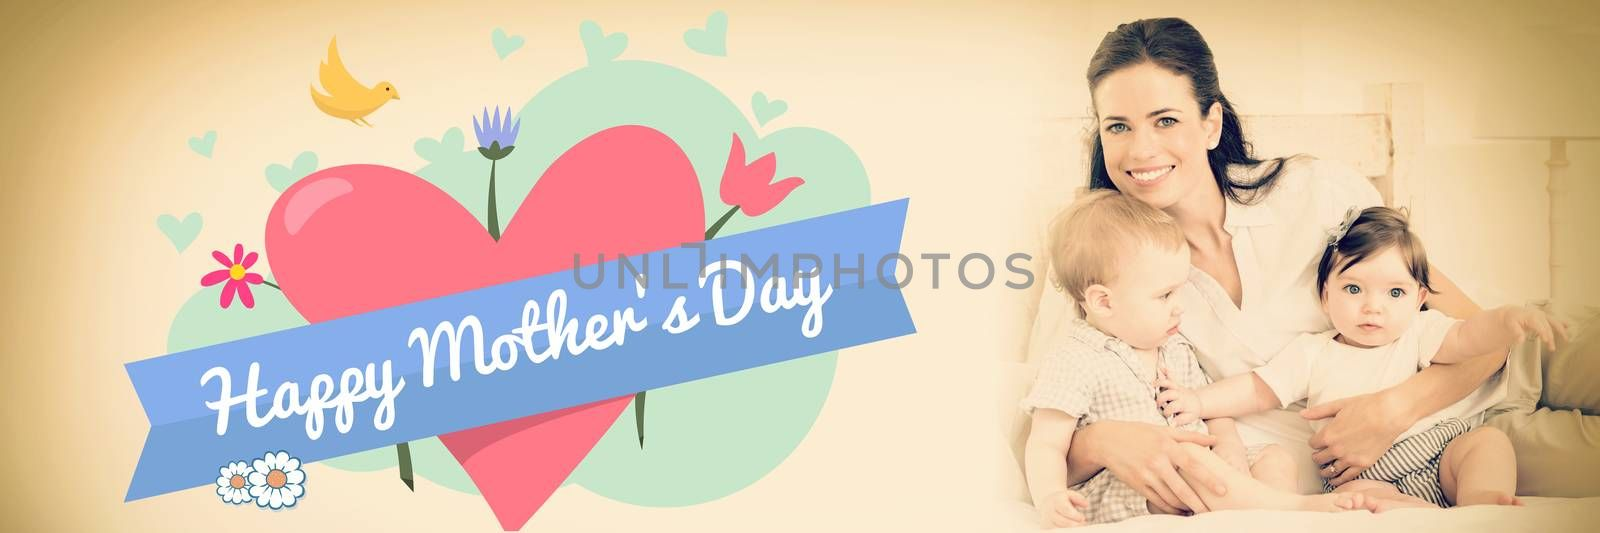 mothers day greeting against cheerful mother with cute babies